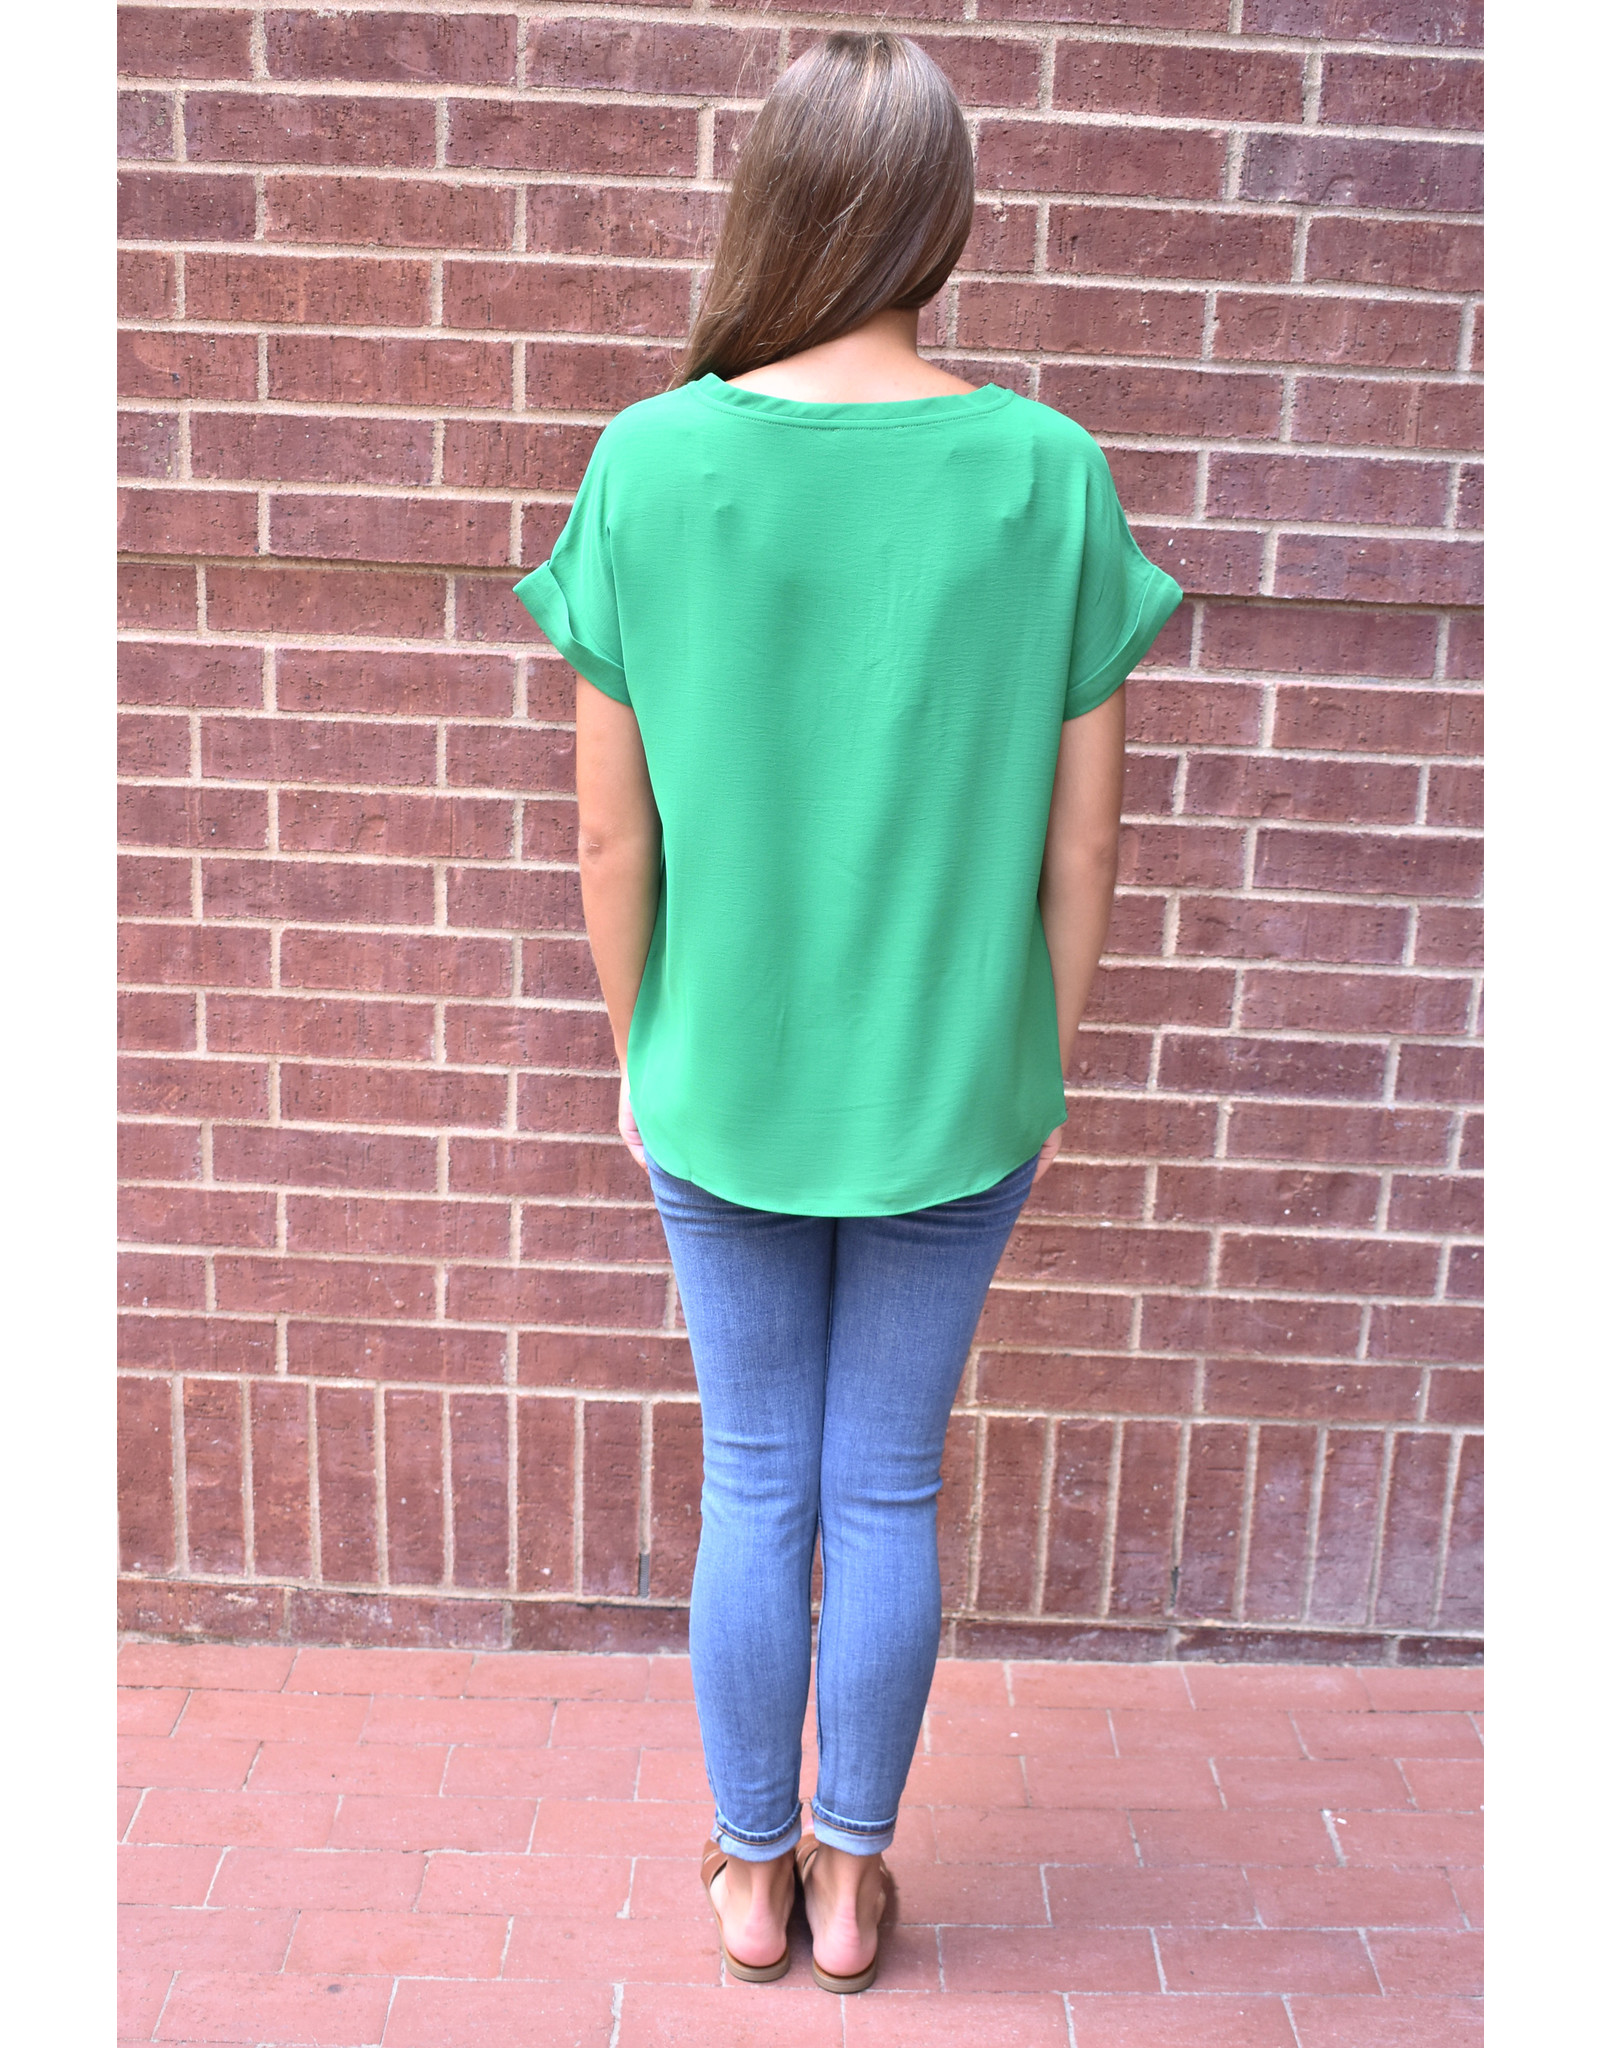 Lyla's: Clothing, Decor & More Green With Envy Top